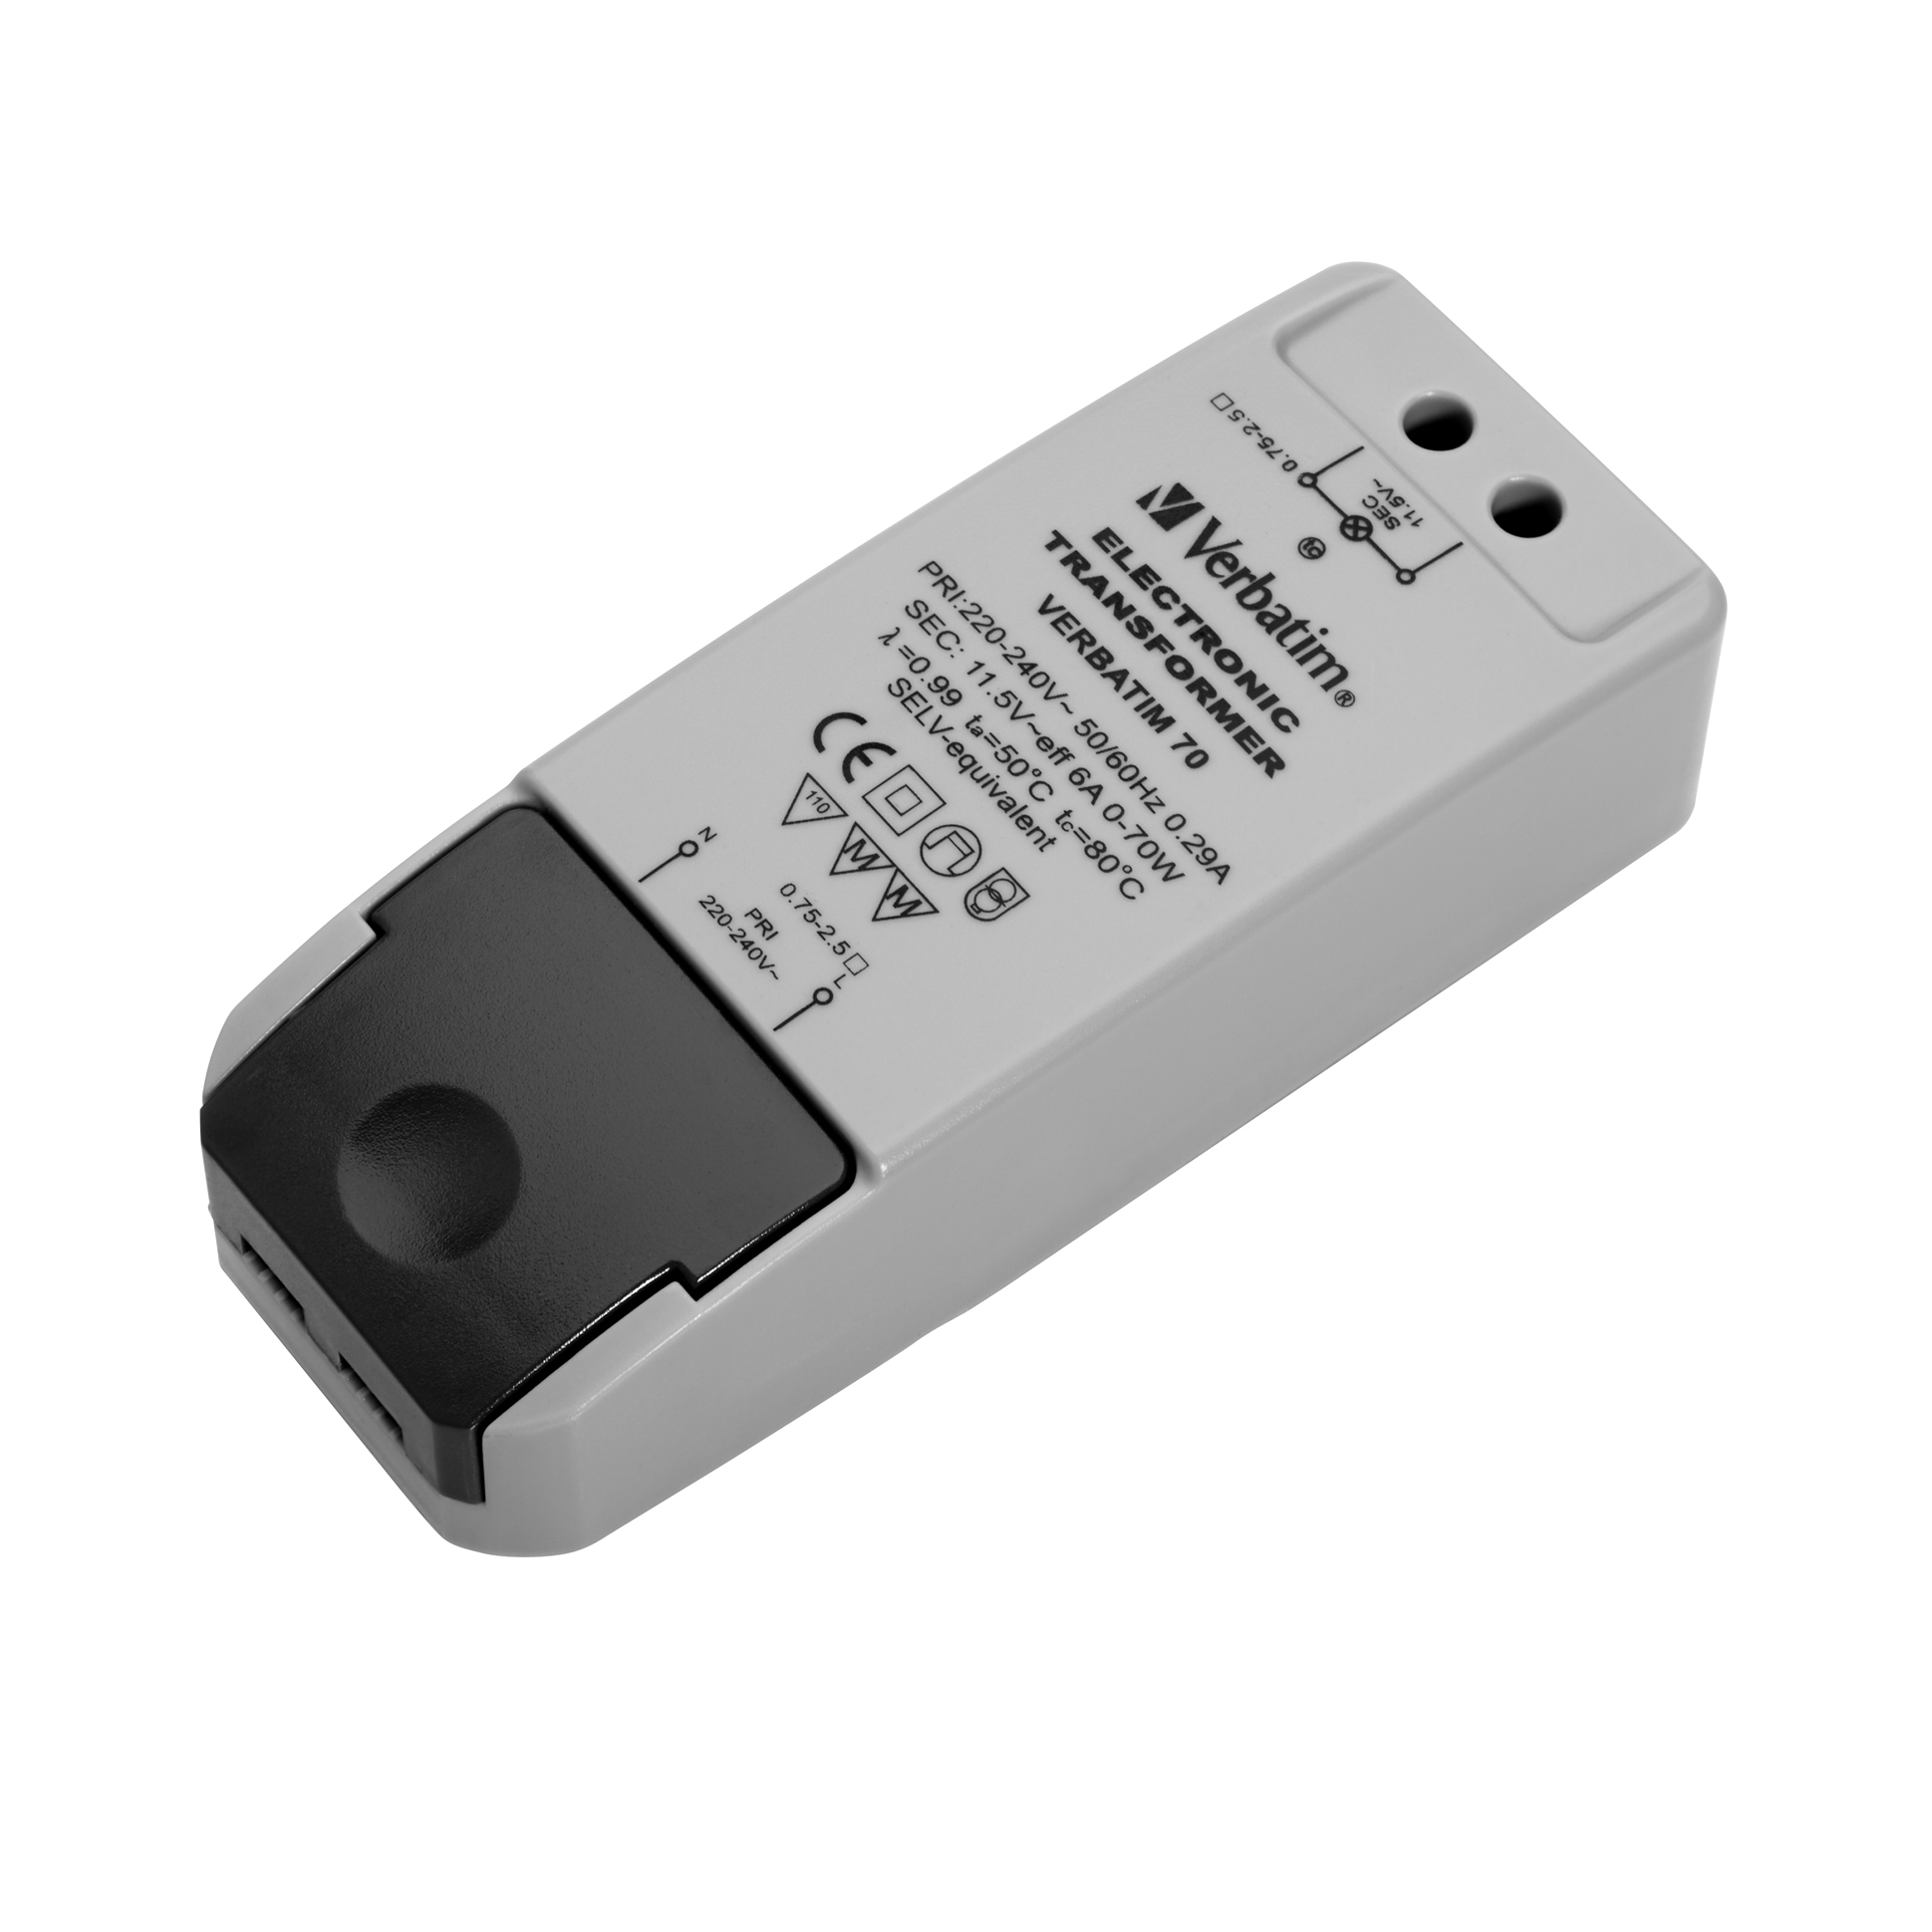 Led Mr16 Electronic Transformer Compatibility: Verbatim 12V LED Compatible Electronic Transformer